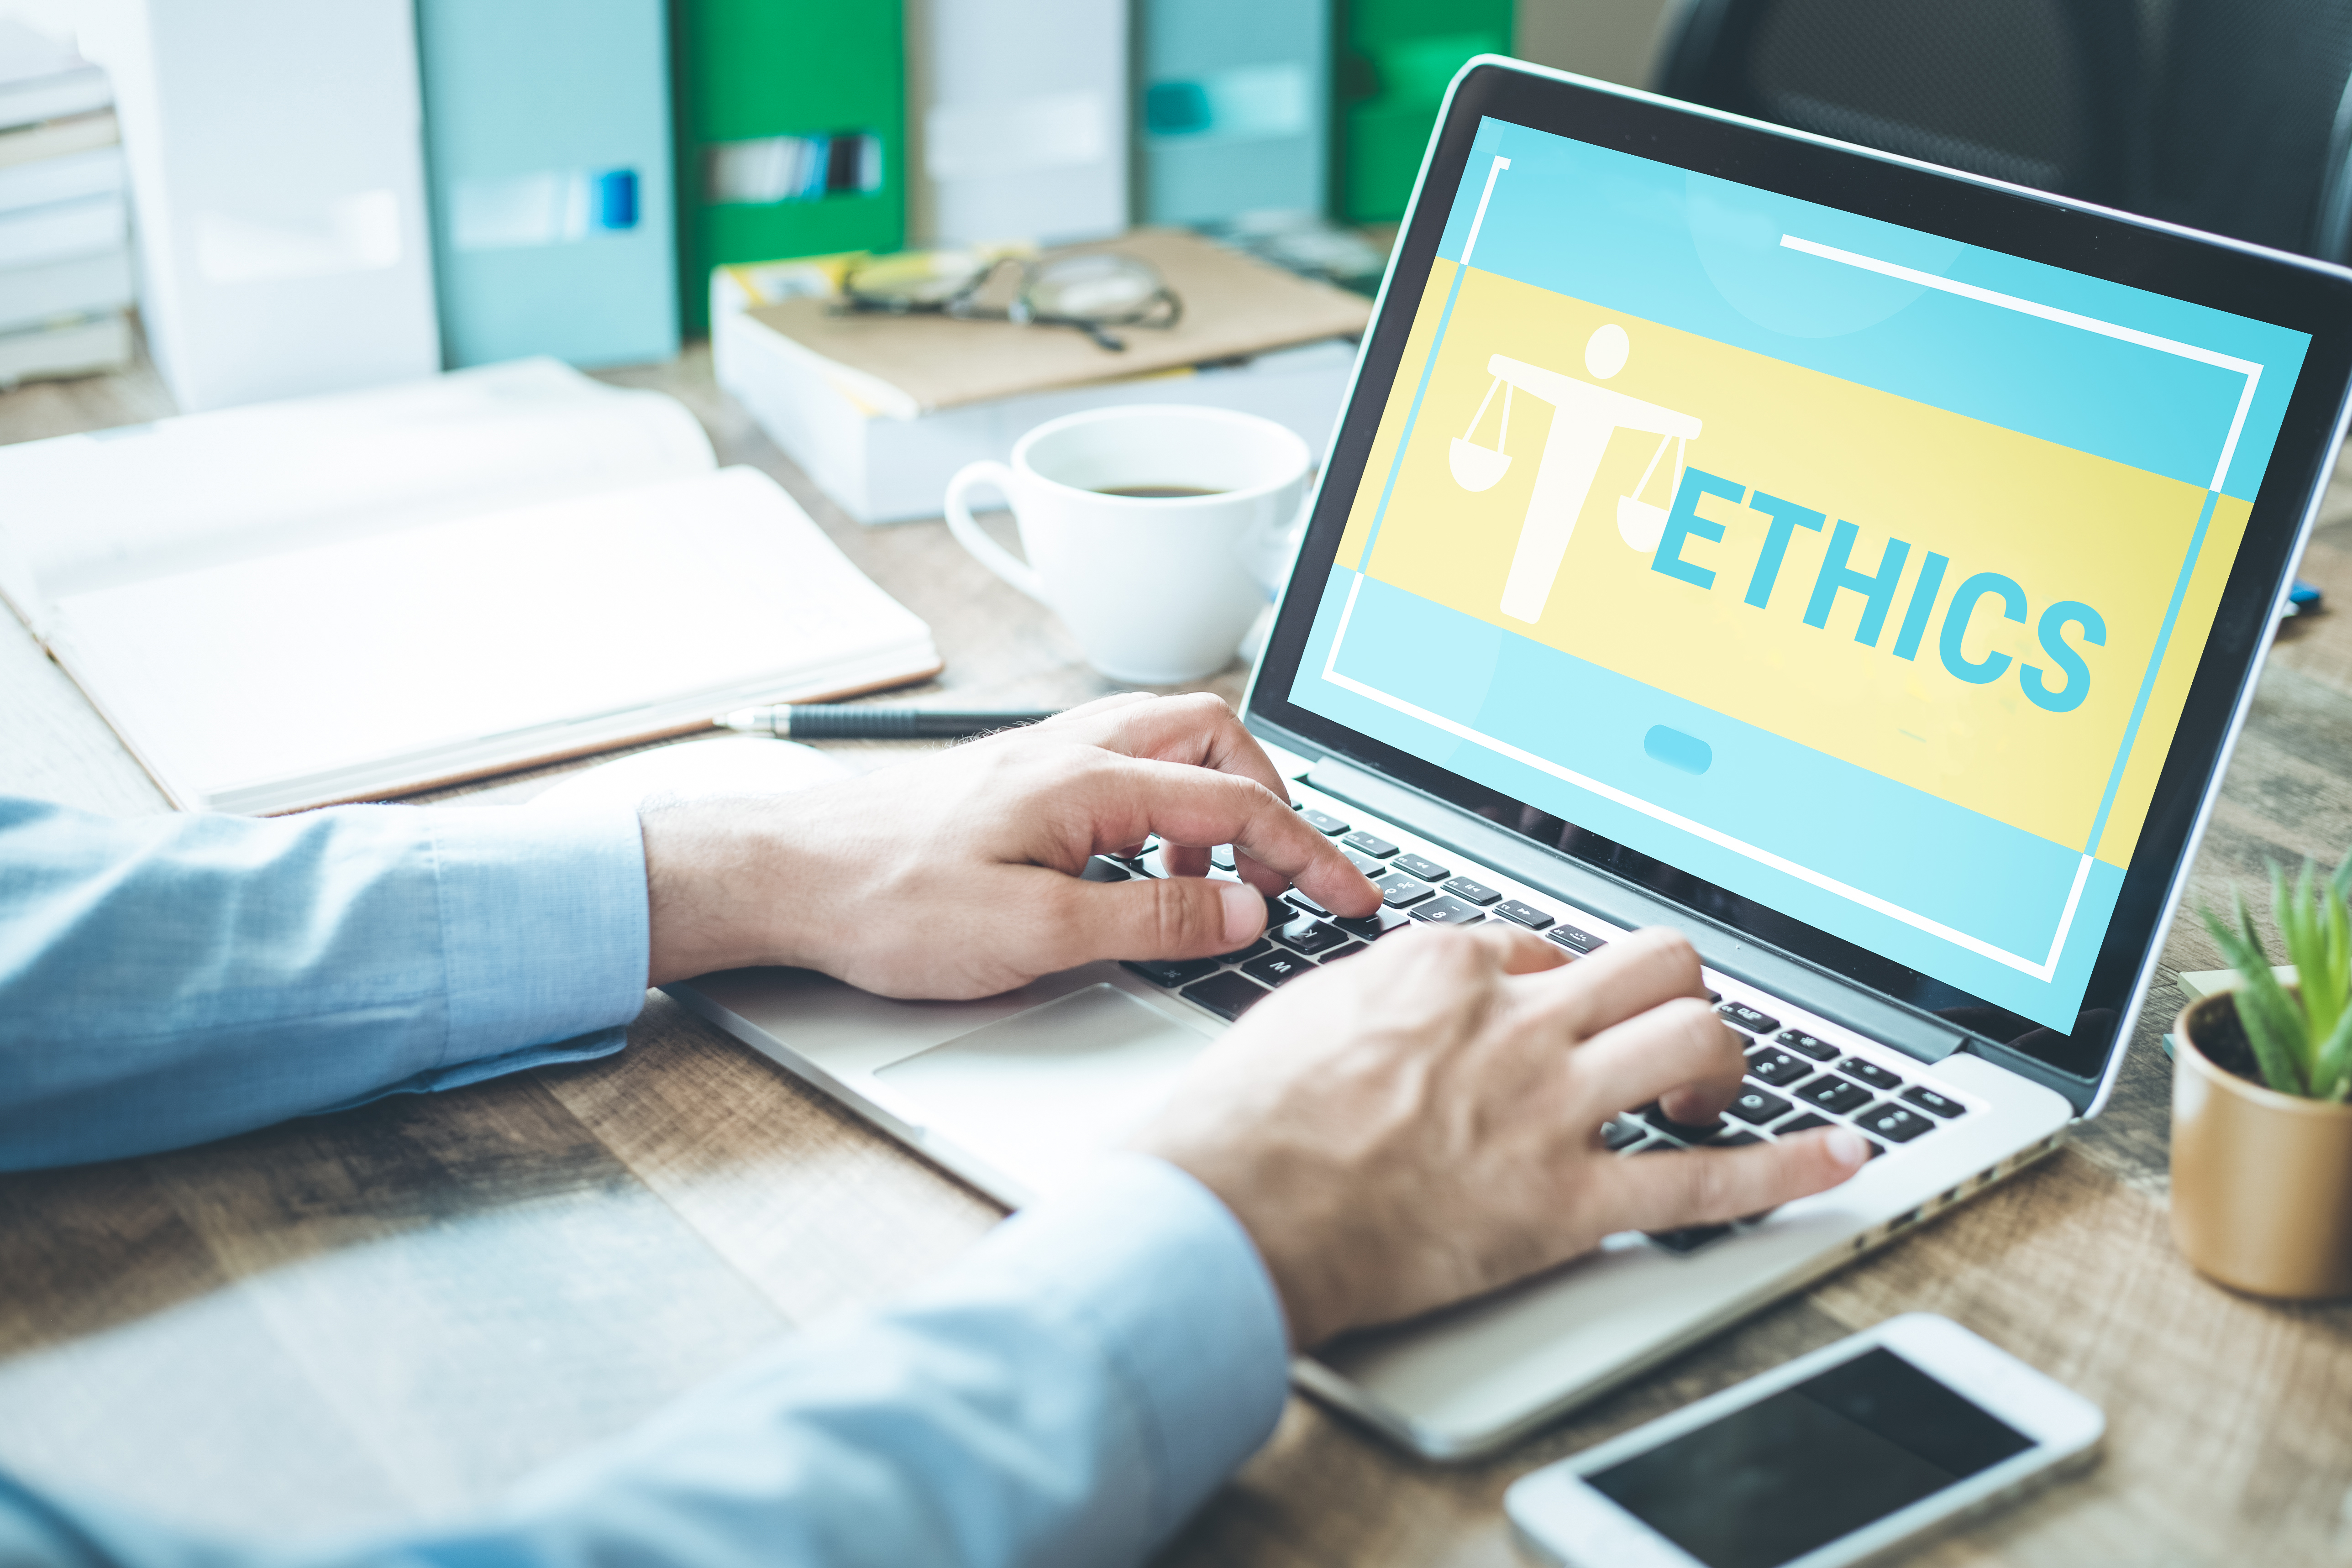 Ethics now available on demand!